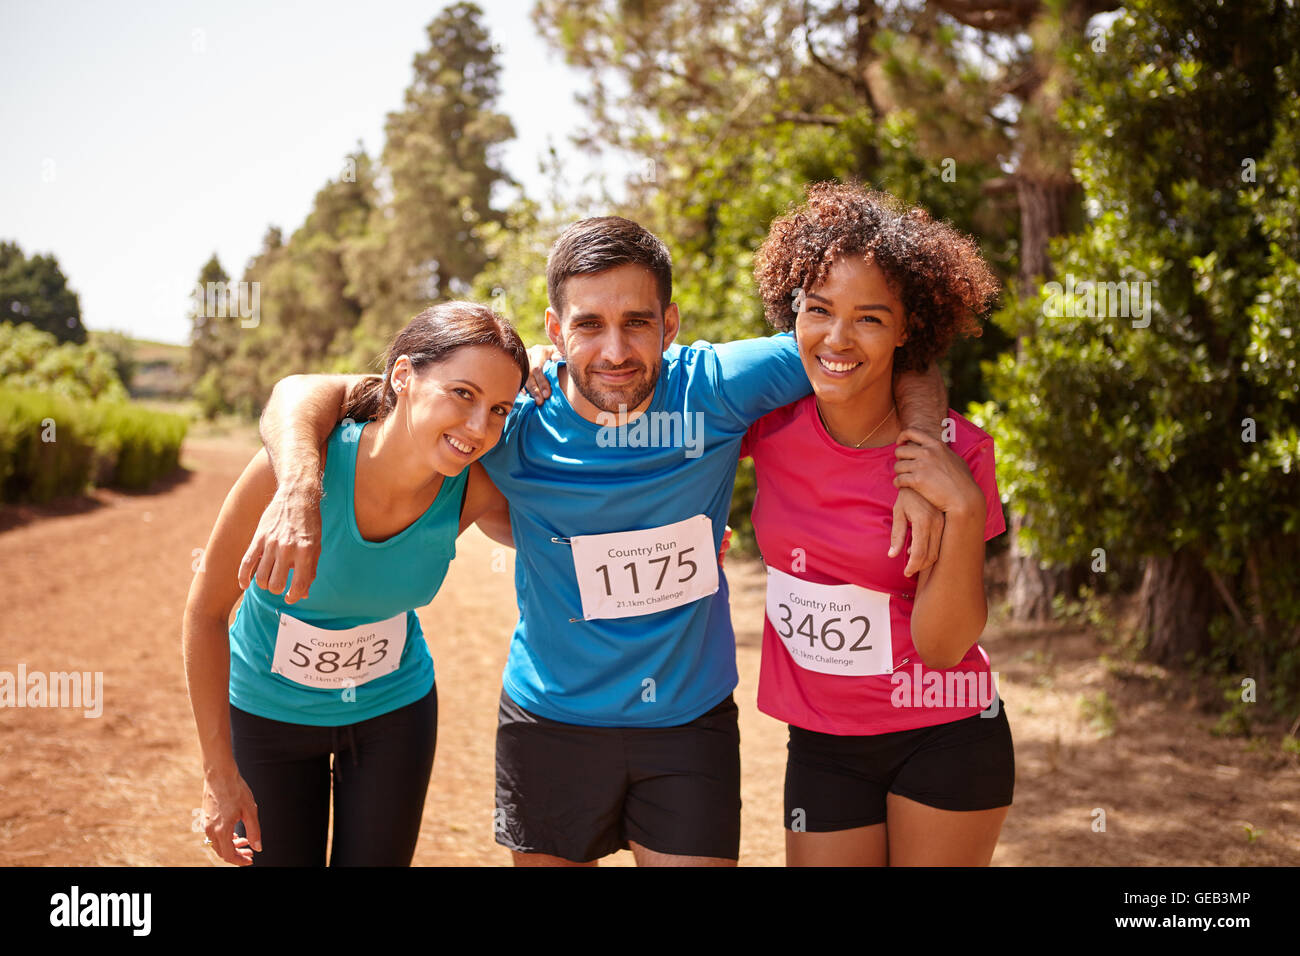 Three happy runners at the end of a cross country marathon with trees behind them wearing casual running clothes - Stock Image